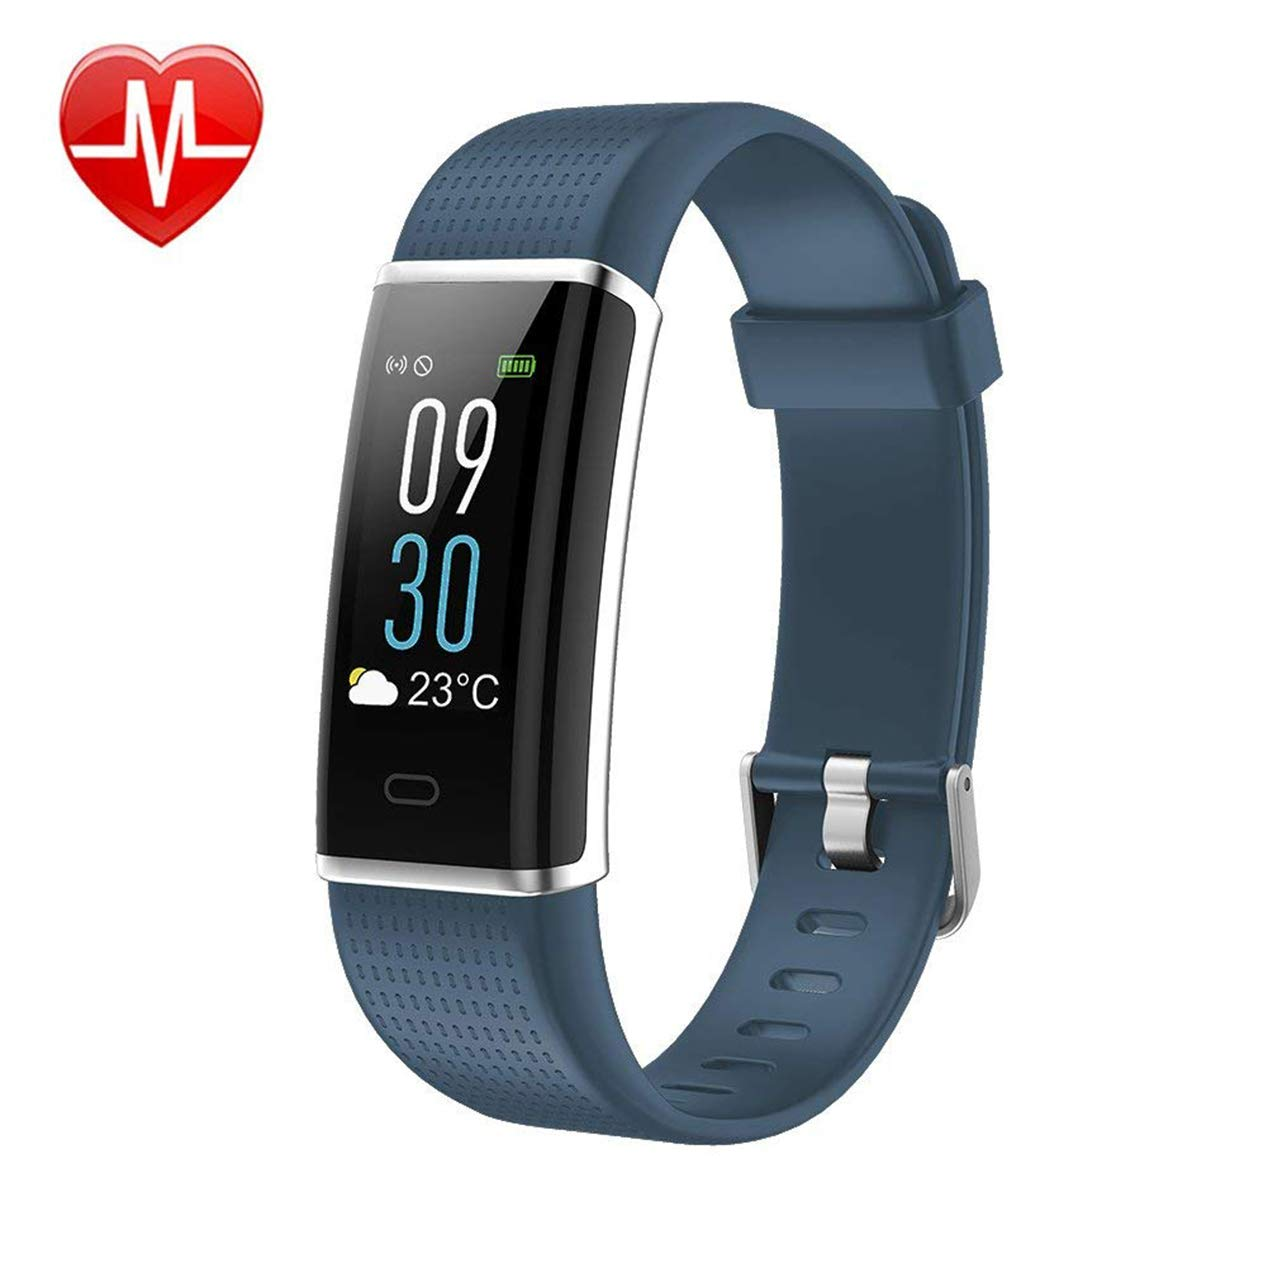 KARSEEN Fitness Tracker, Activity Tracker Fitness Watch Heart Rate Monitor Colorful OLED Screen Smart Watch with Sleep Monitor, Step Counter, IP68 Waterproof Pedometer for Android&iOS Phone (Grey) by KARSEEN